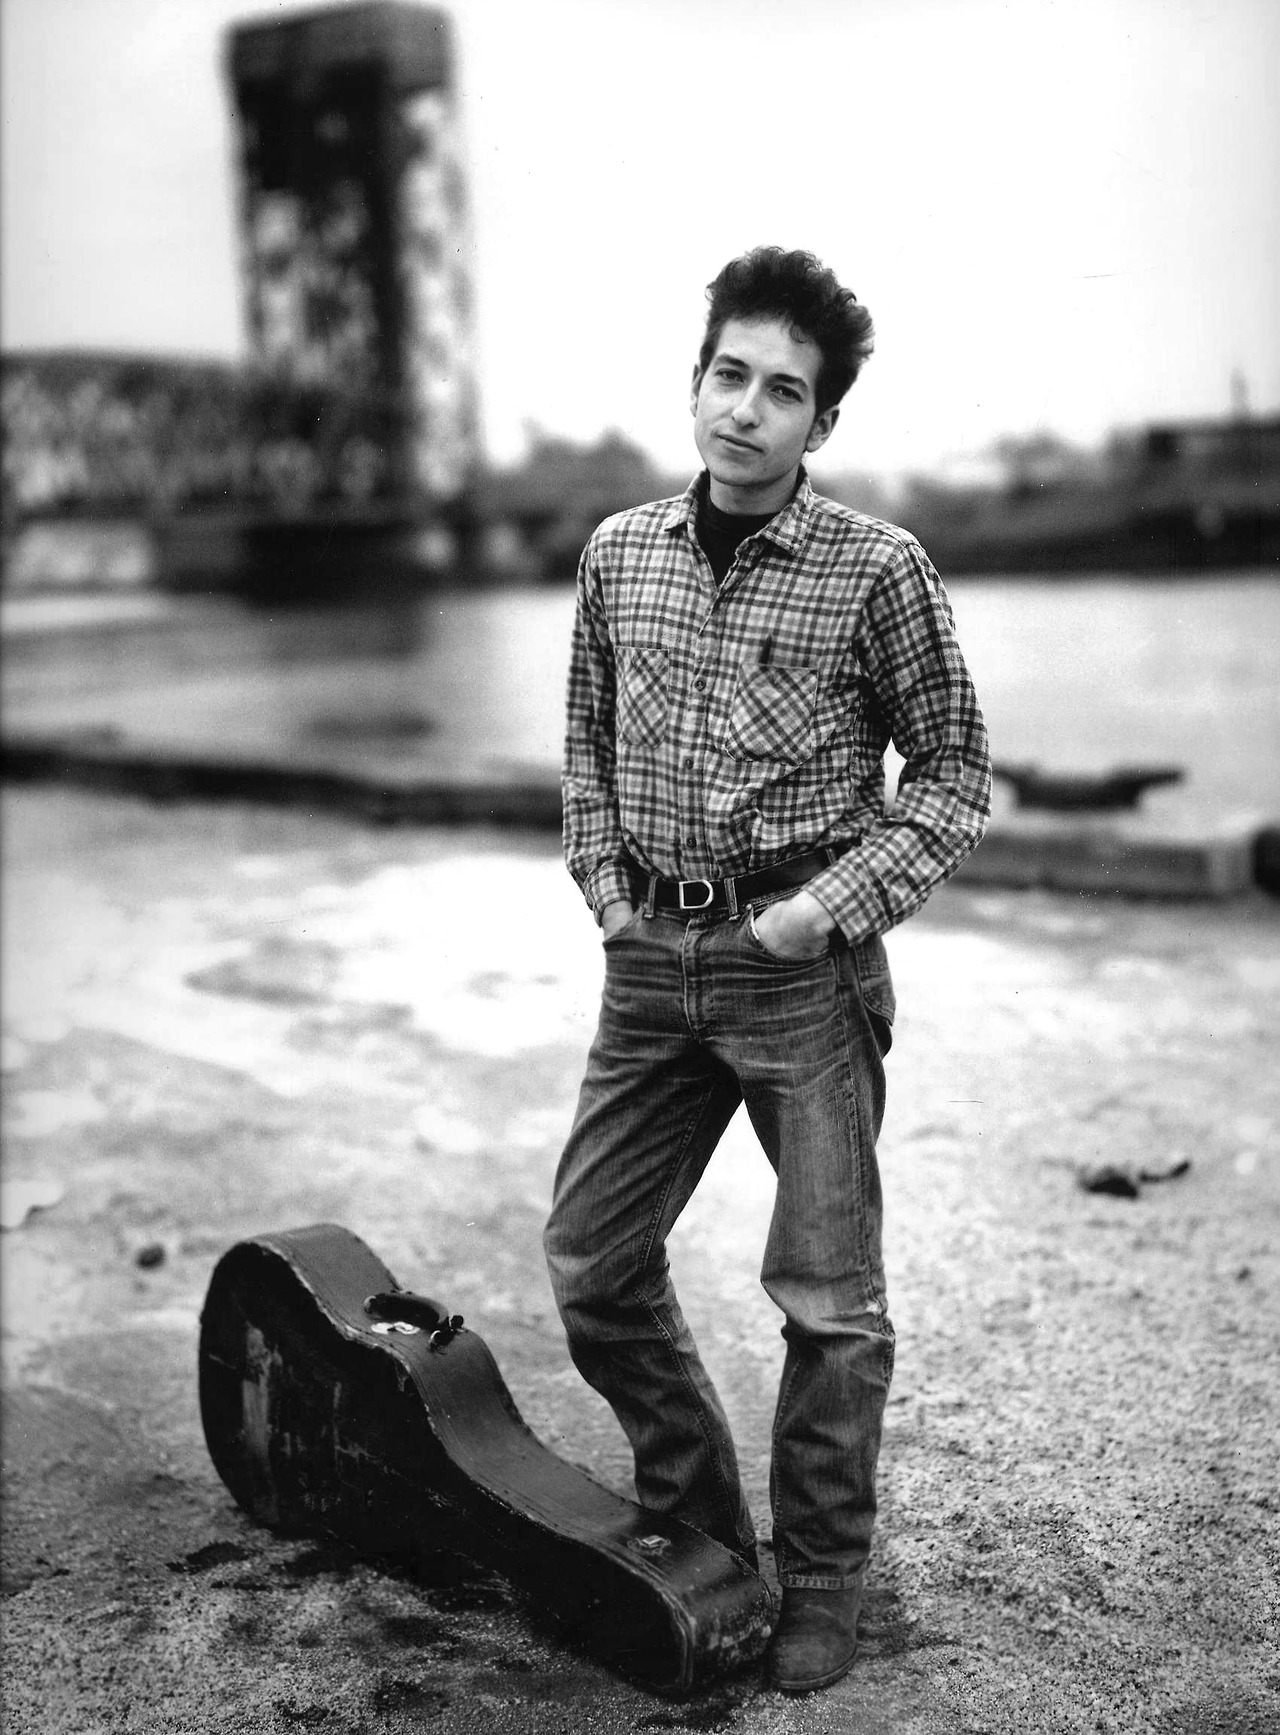 Fig. 1. Richard Avedon, Bob Dylan, New York, 1965